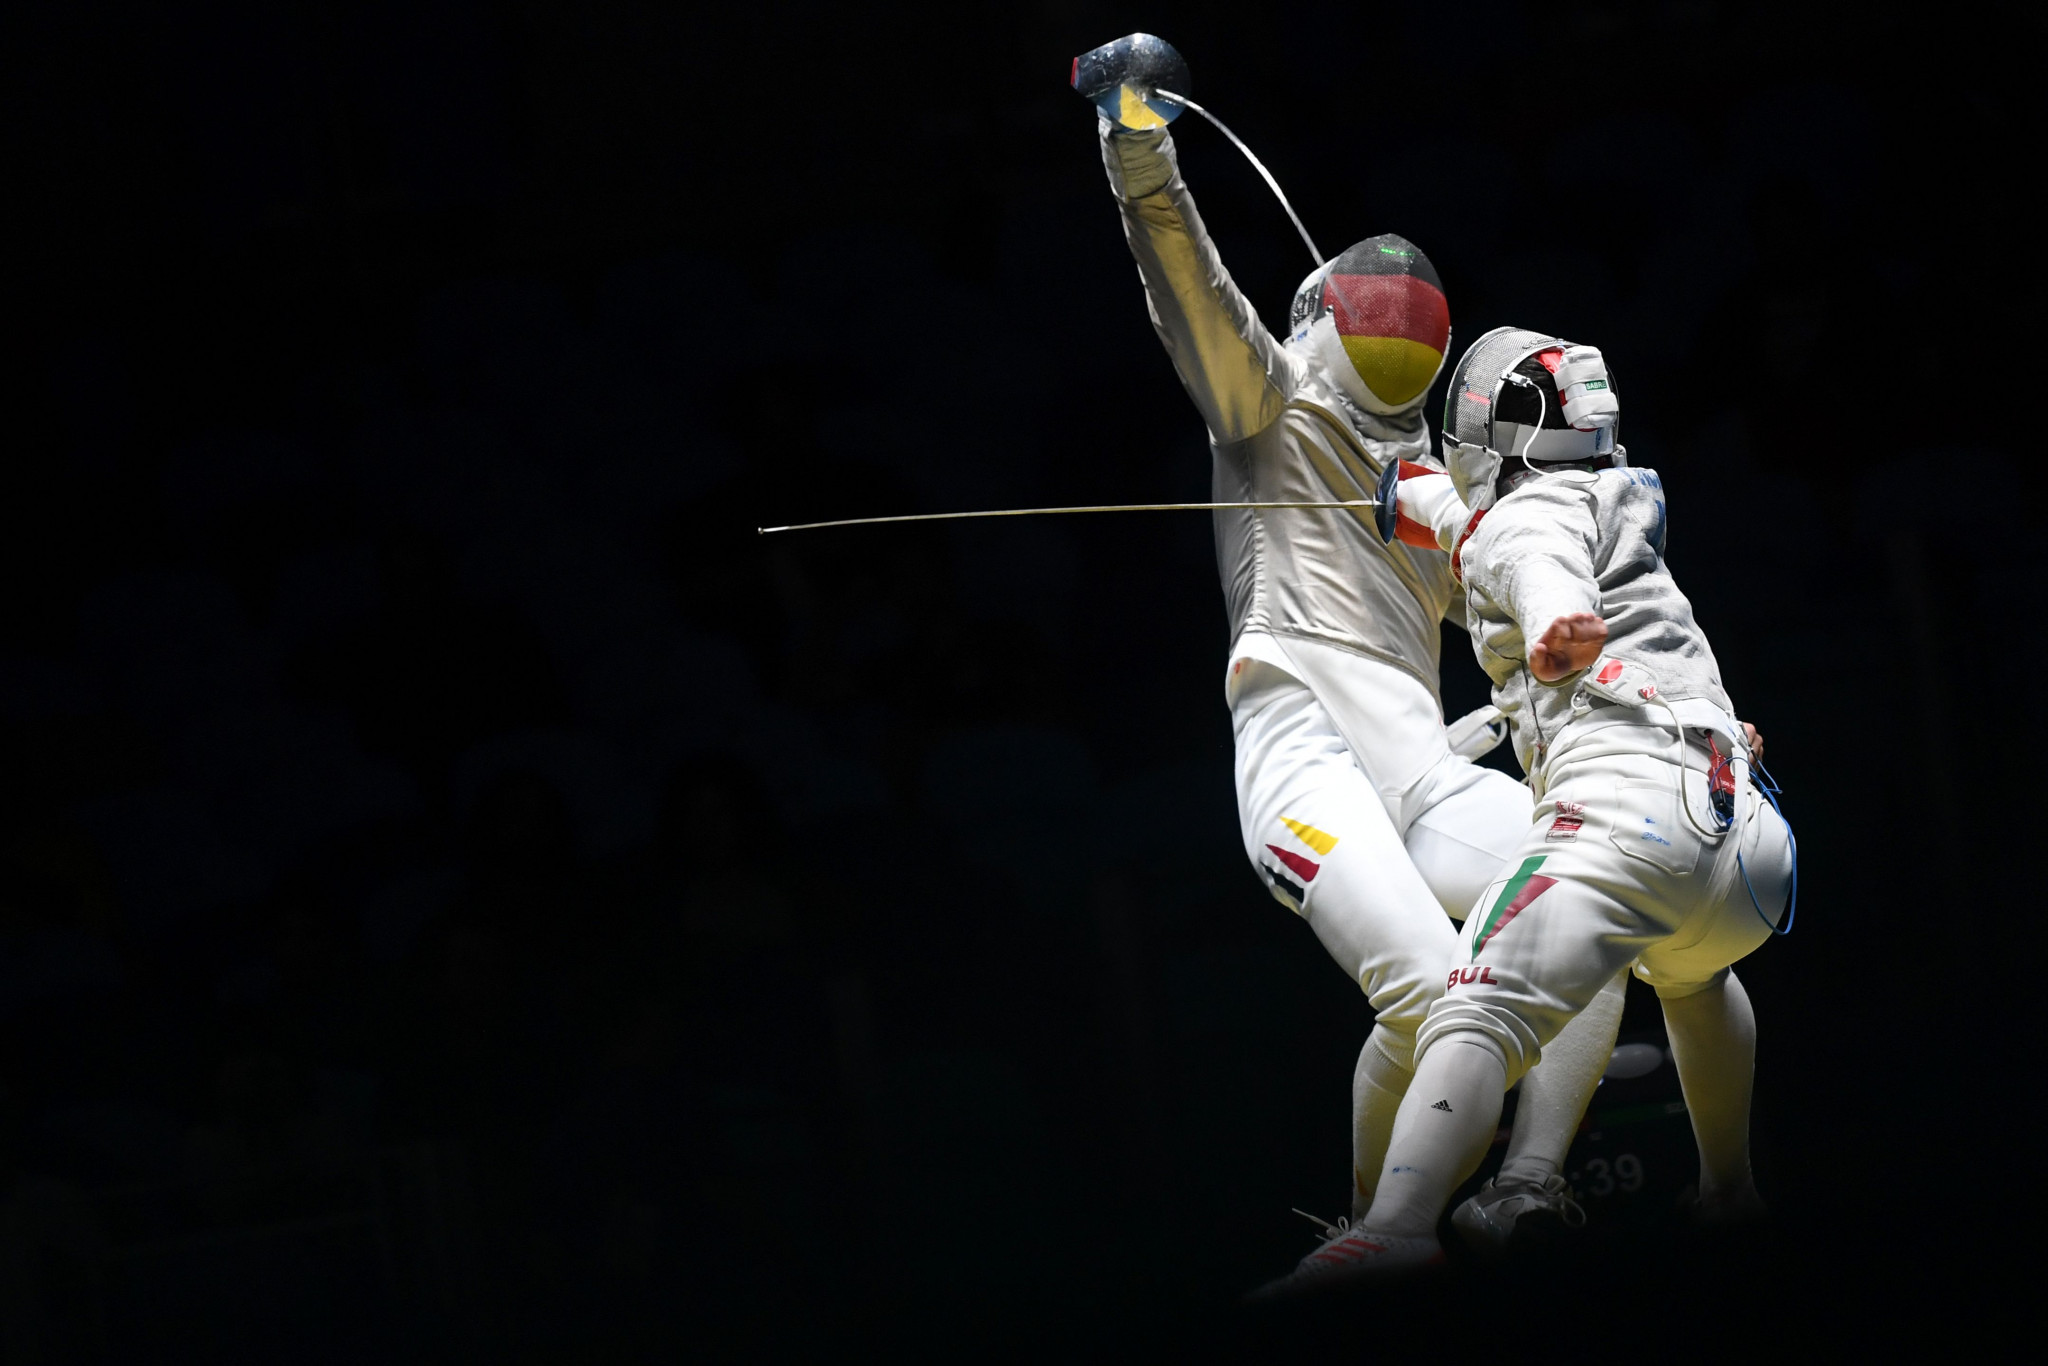 European Fencing Championships postponed until at least autumn